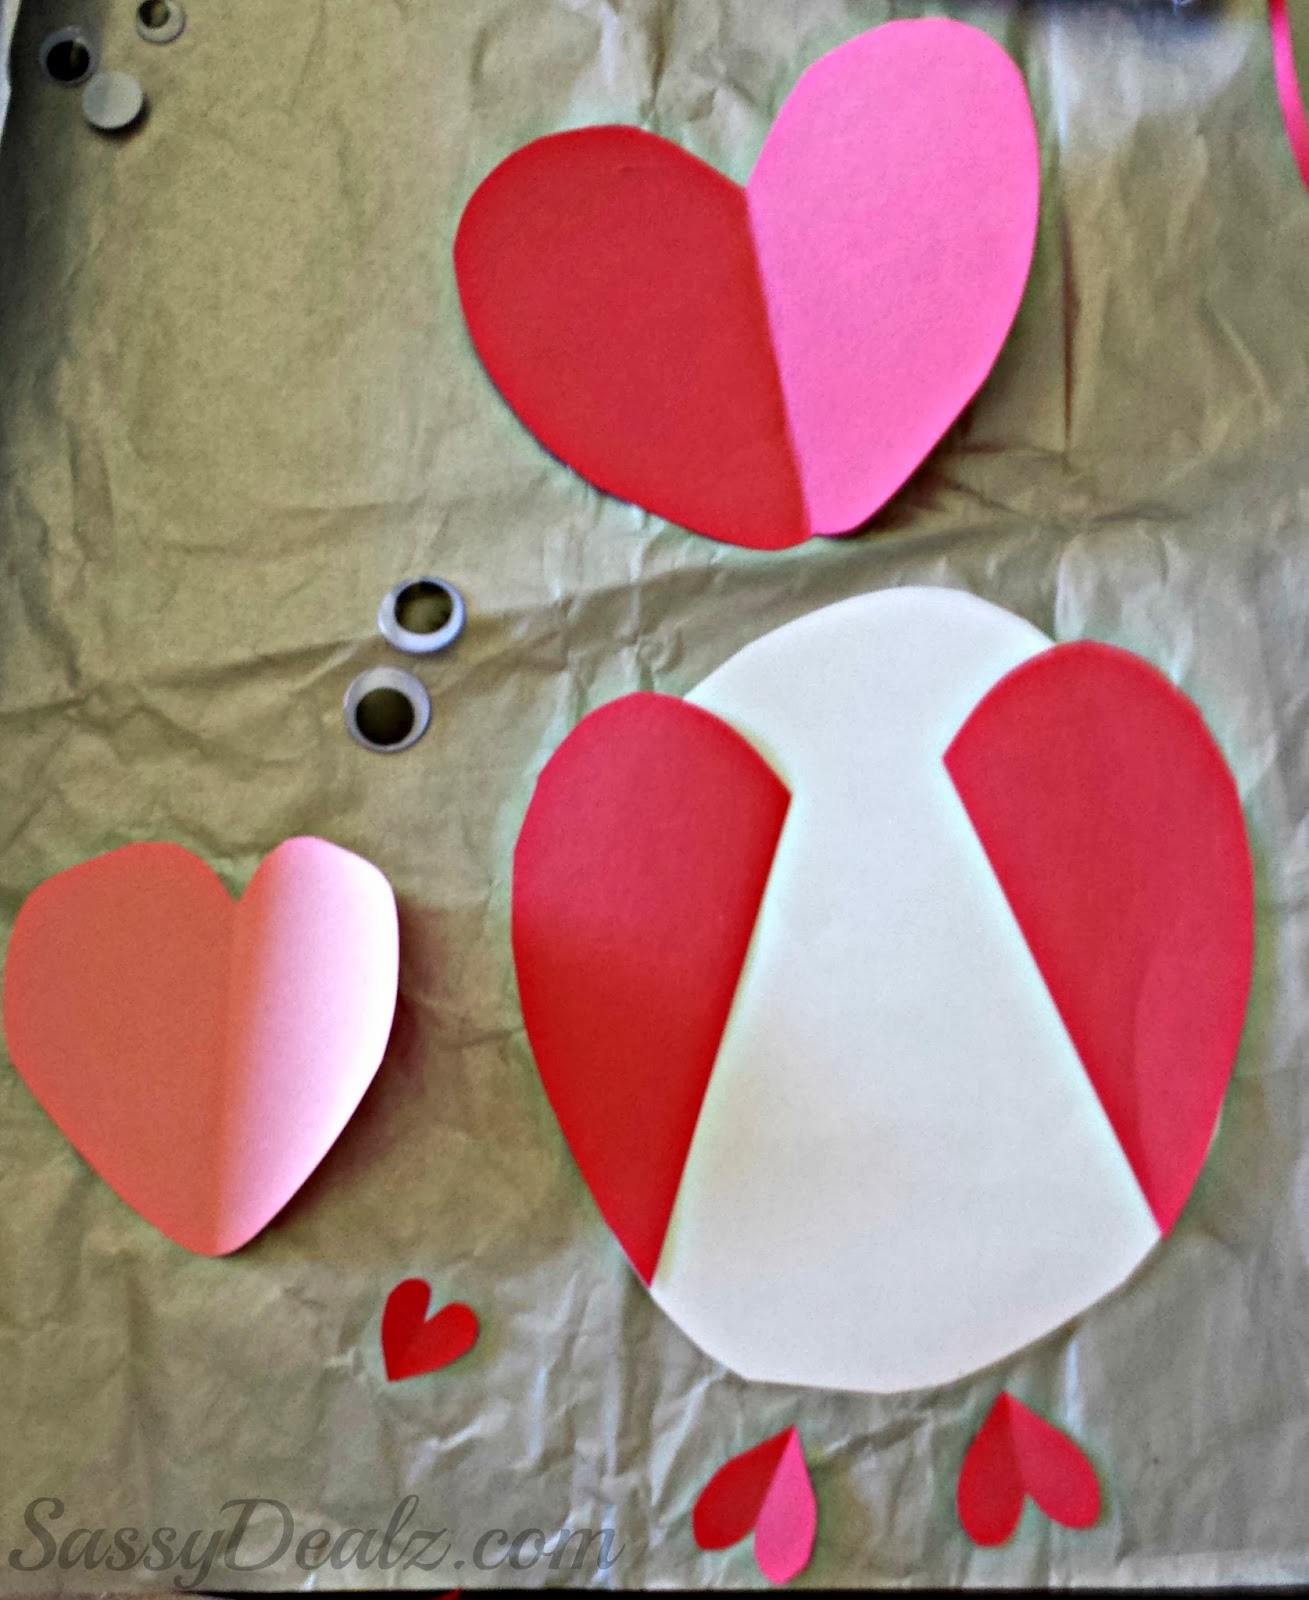 Valentine Heart Fingerprint Craft For Kids Diy Card Idea Crafty